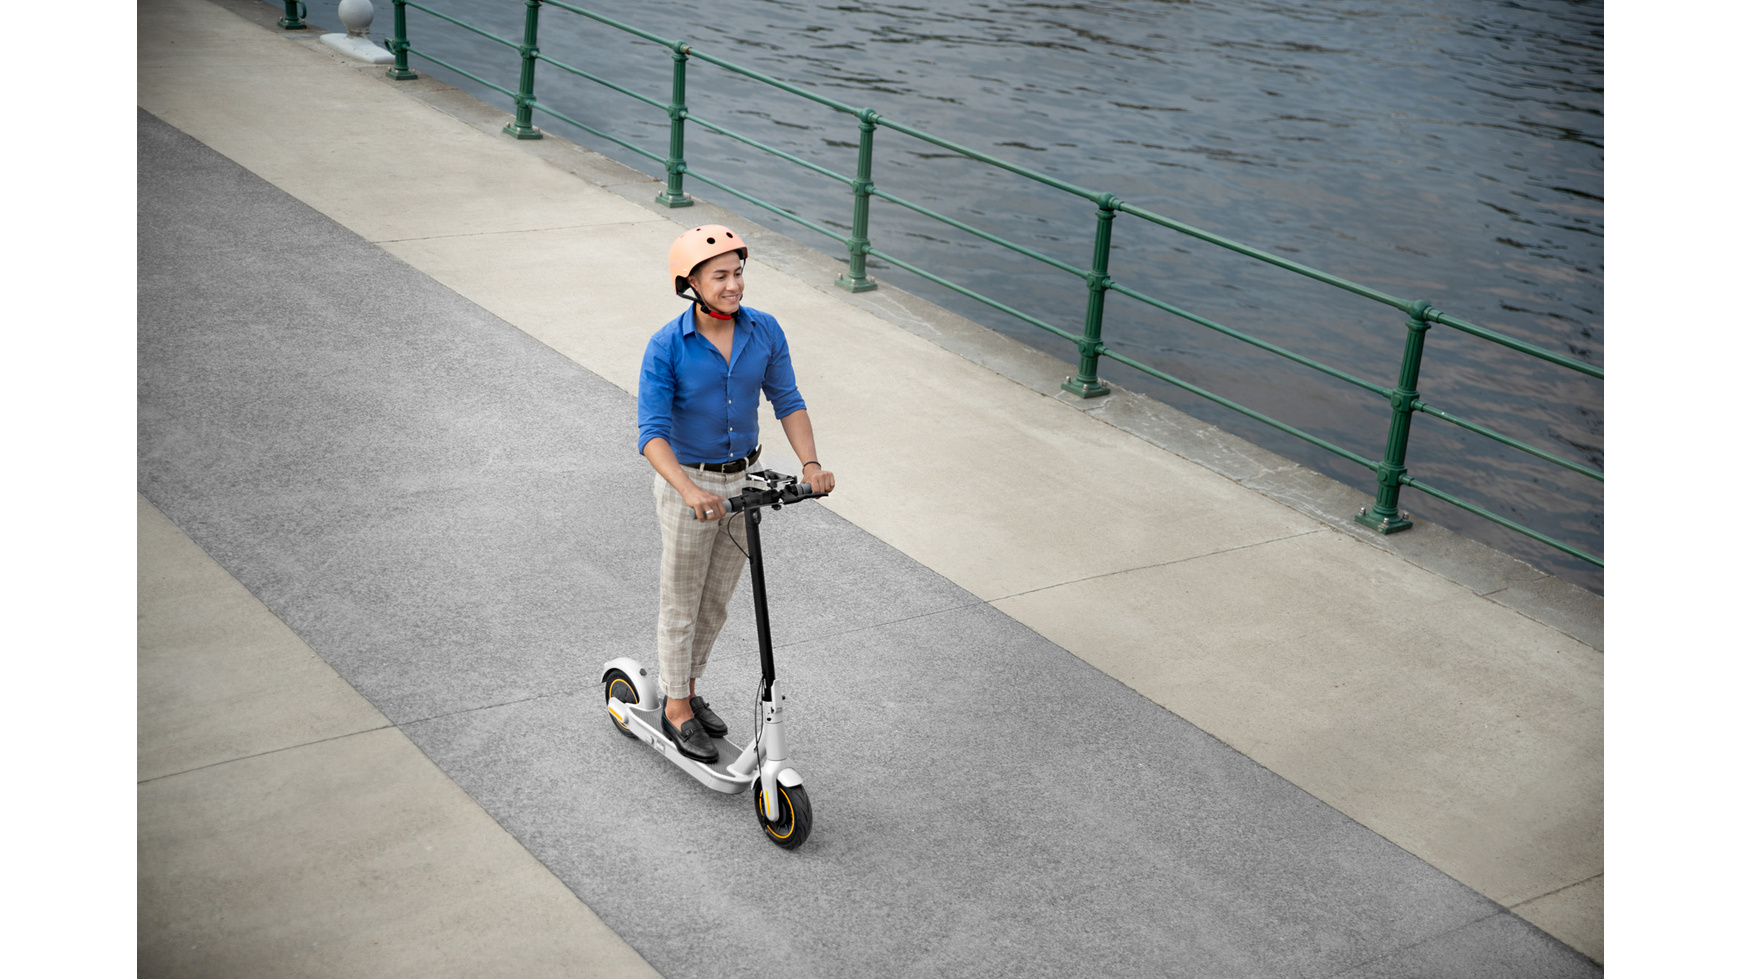 eScooter Segway Ninebot G30LD mit Person in Fahrt